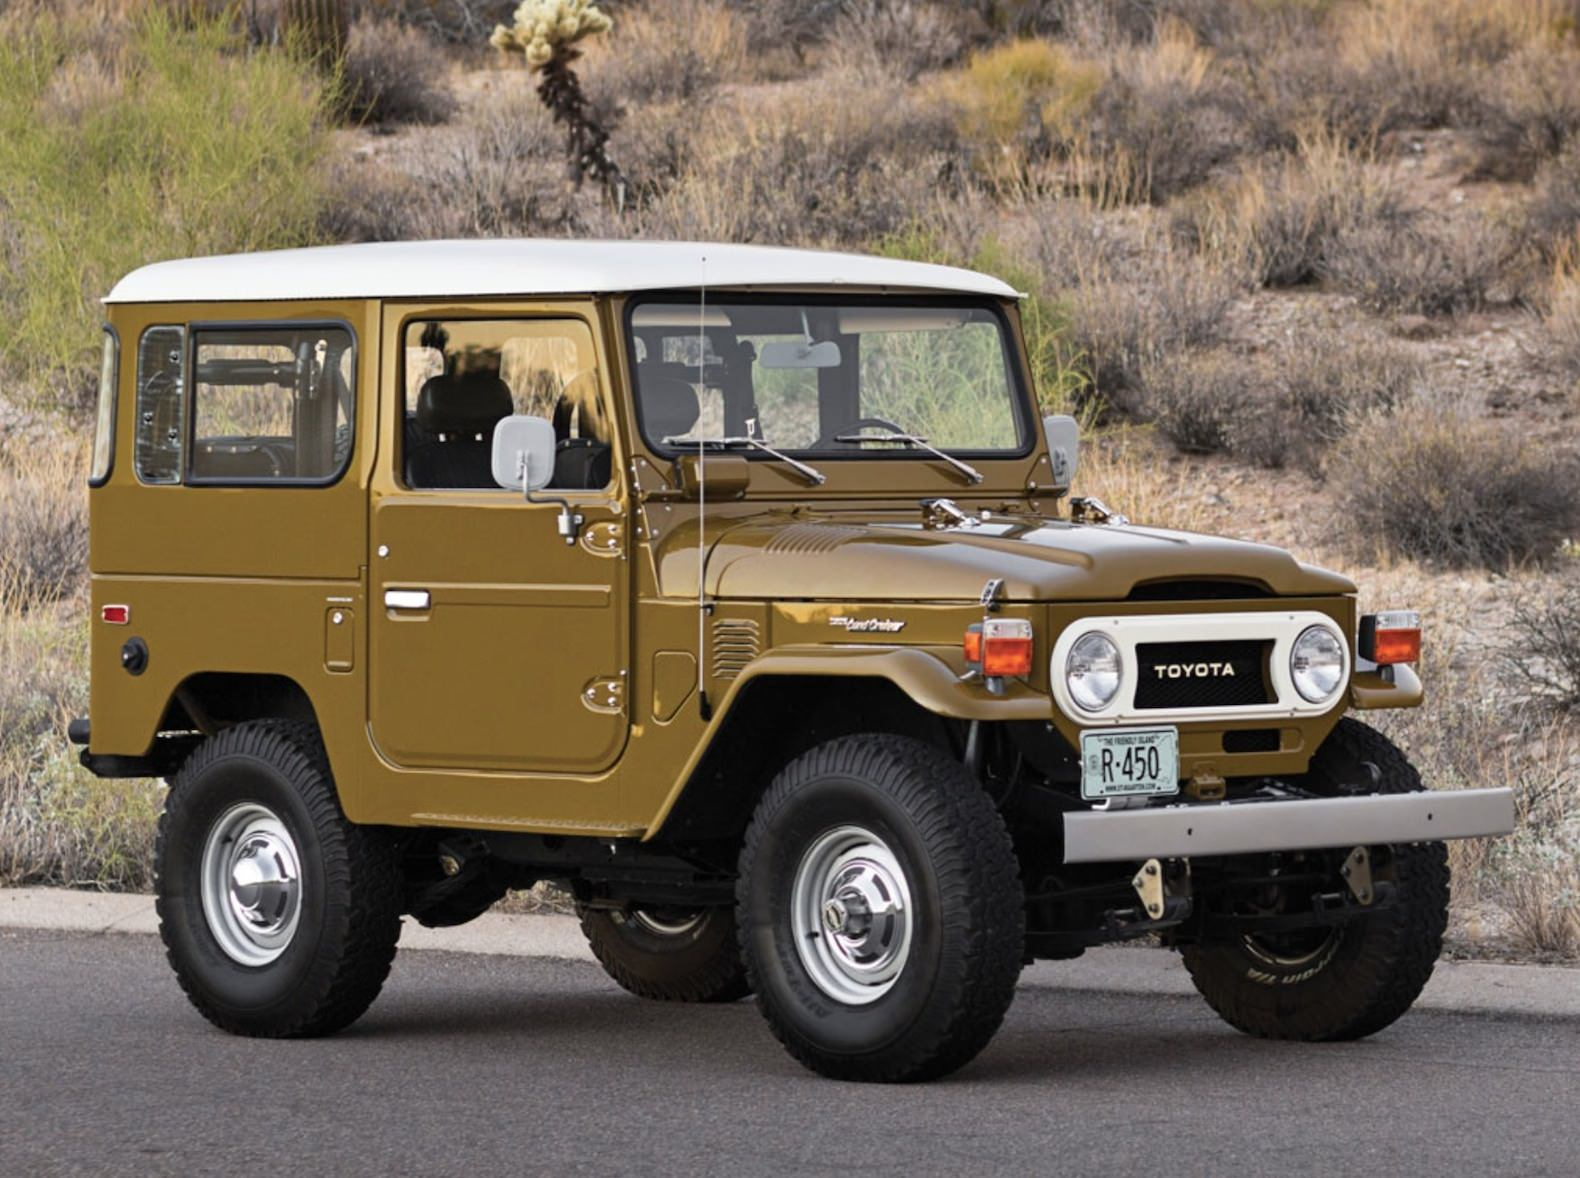 1977 toyota fj40 land cruiser. Black Bedroom Furniture Sets. Home Design Ideas